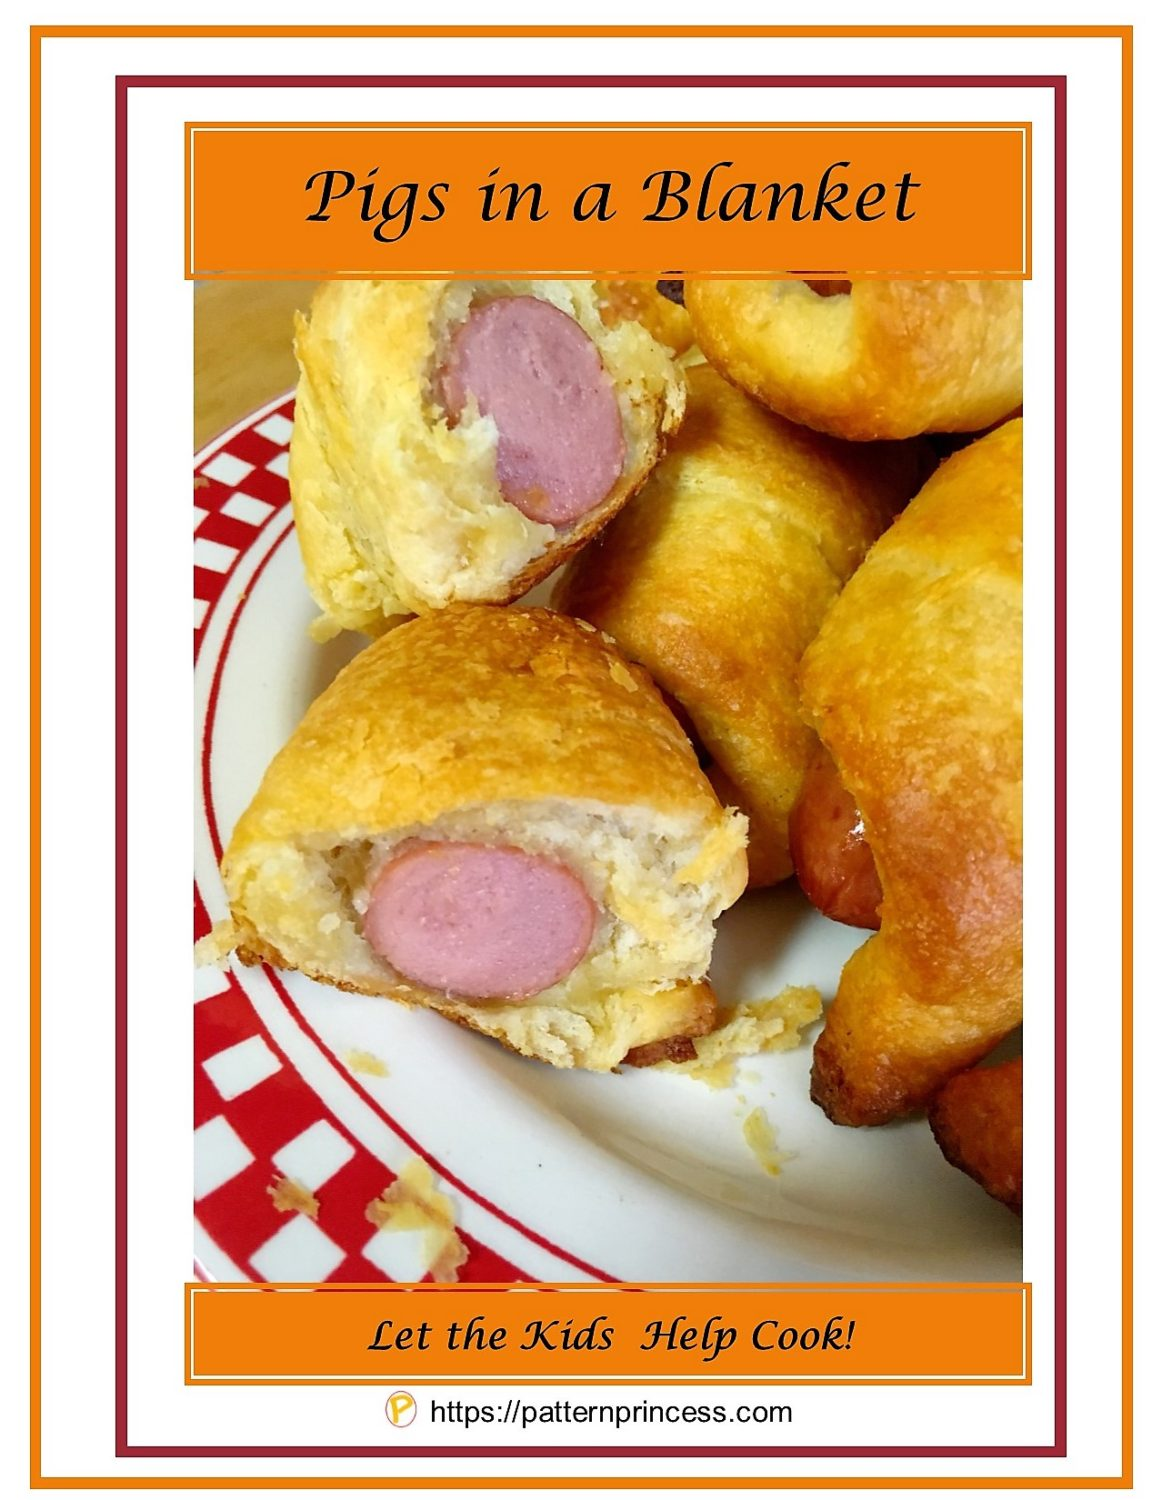 Pigs in a Blanket 1